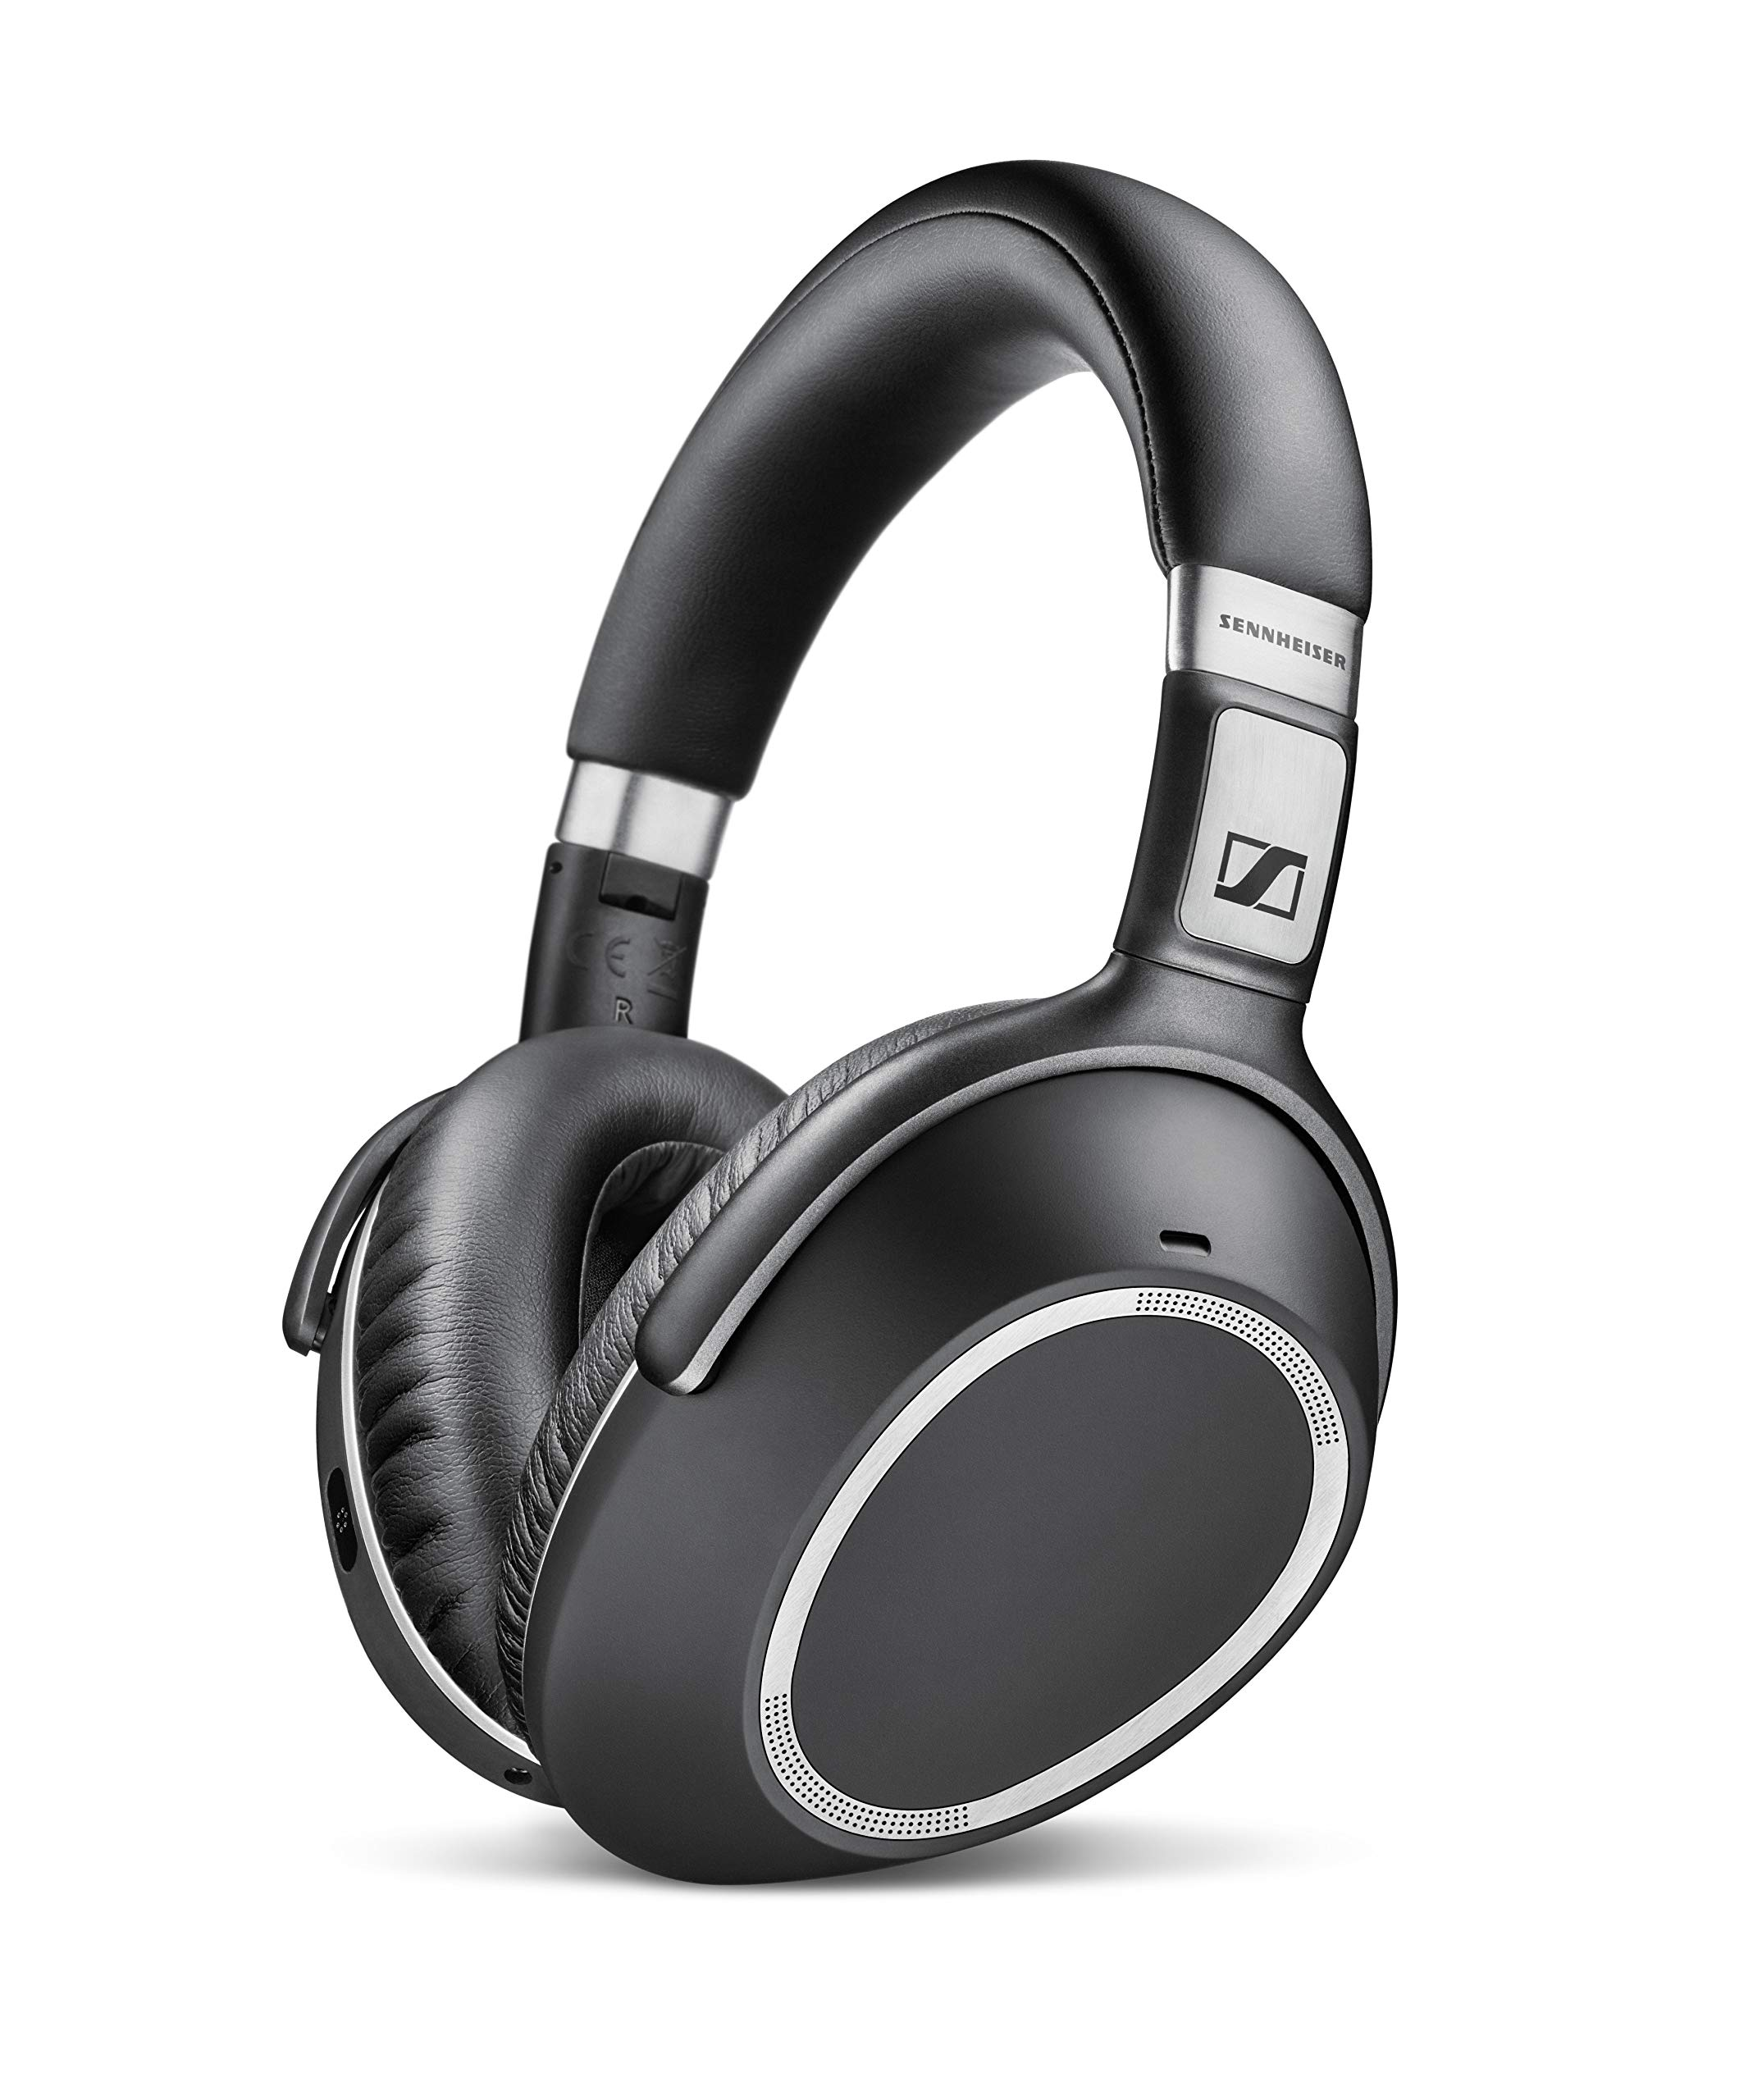 젠하이저 PXC 550-II 무선 노이즈 캔슬링 헤드폰 Sennheiser Consumer Audio PXC 550-II Black Bluetooth Wireless Over-Ear Headphones